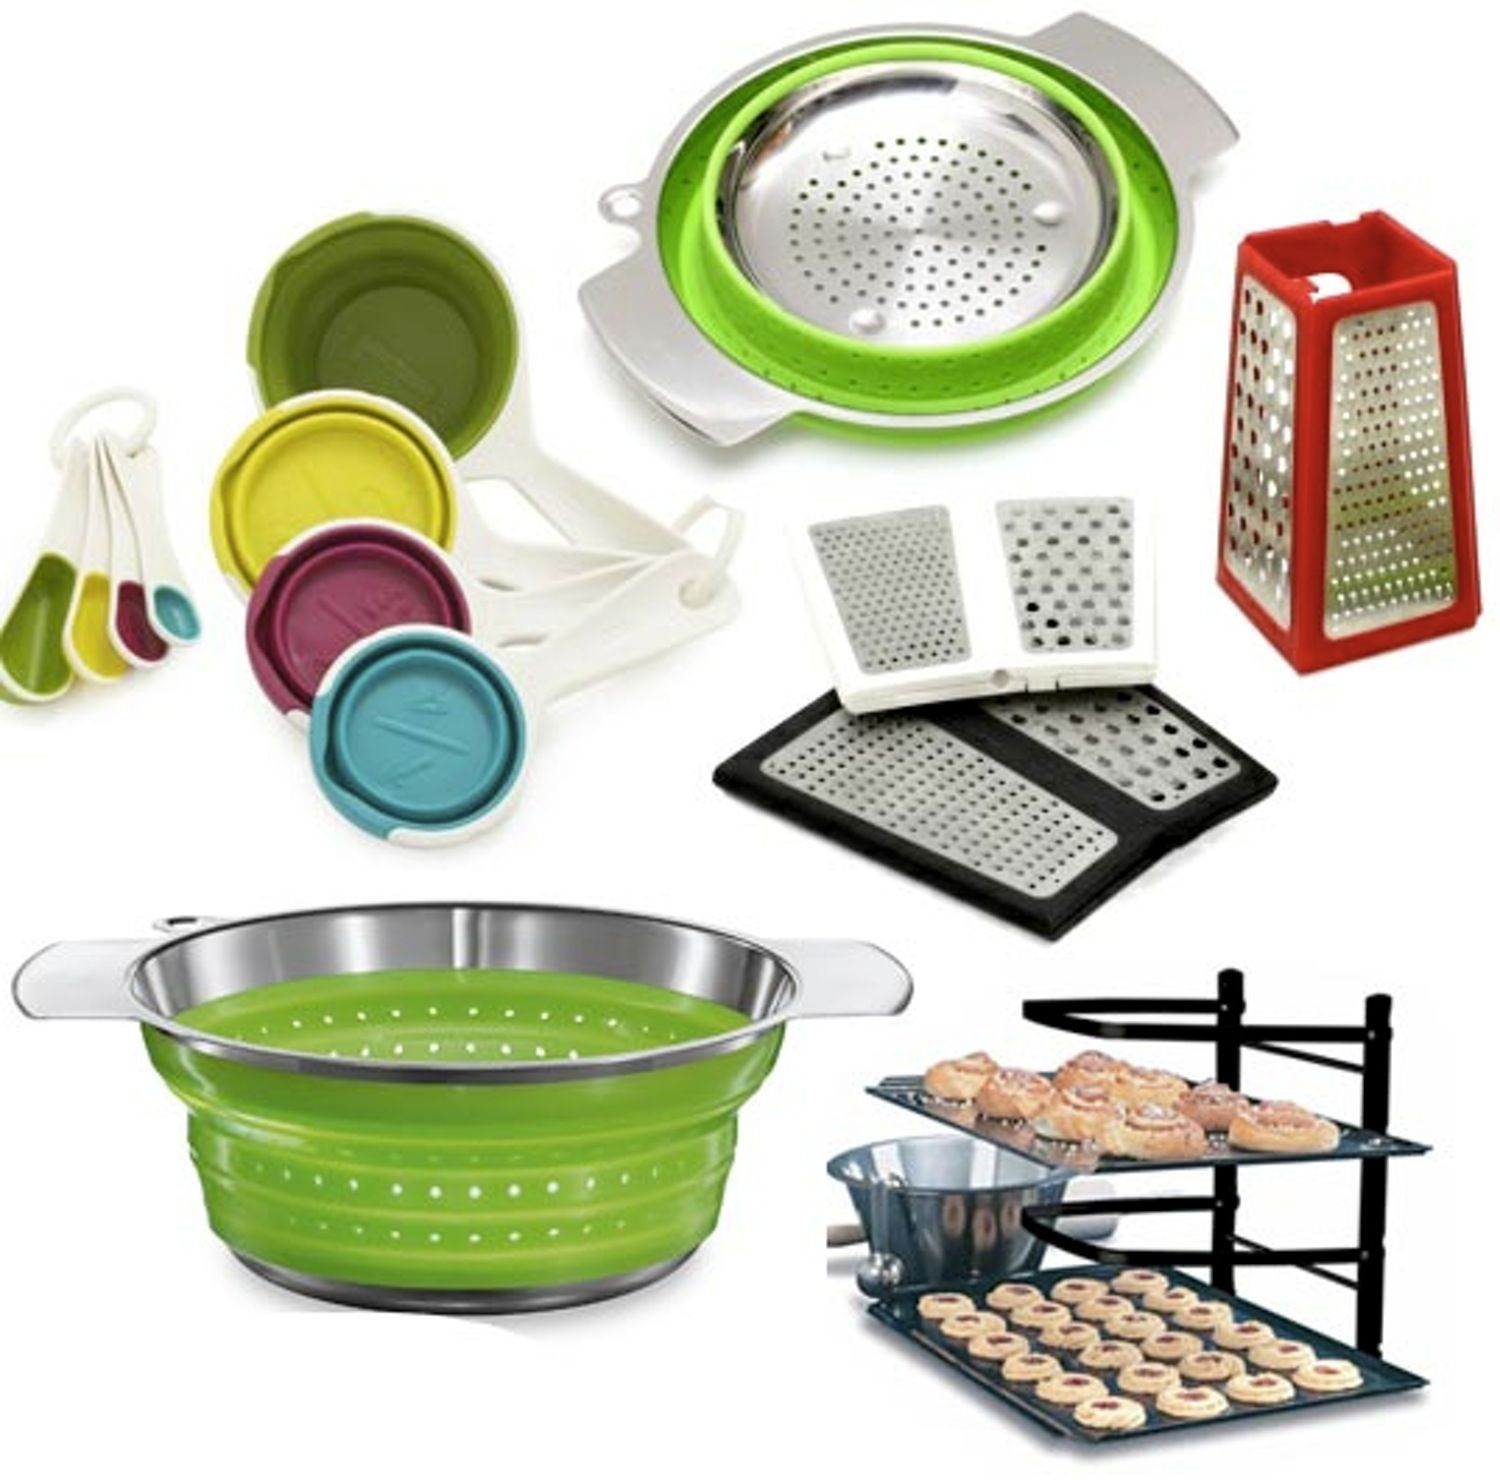 5 Collapsible, Foldable, and Space-Saving Tools for Small Kitchens — Best Products for Small Kitchens